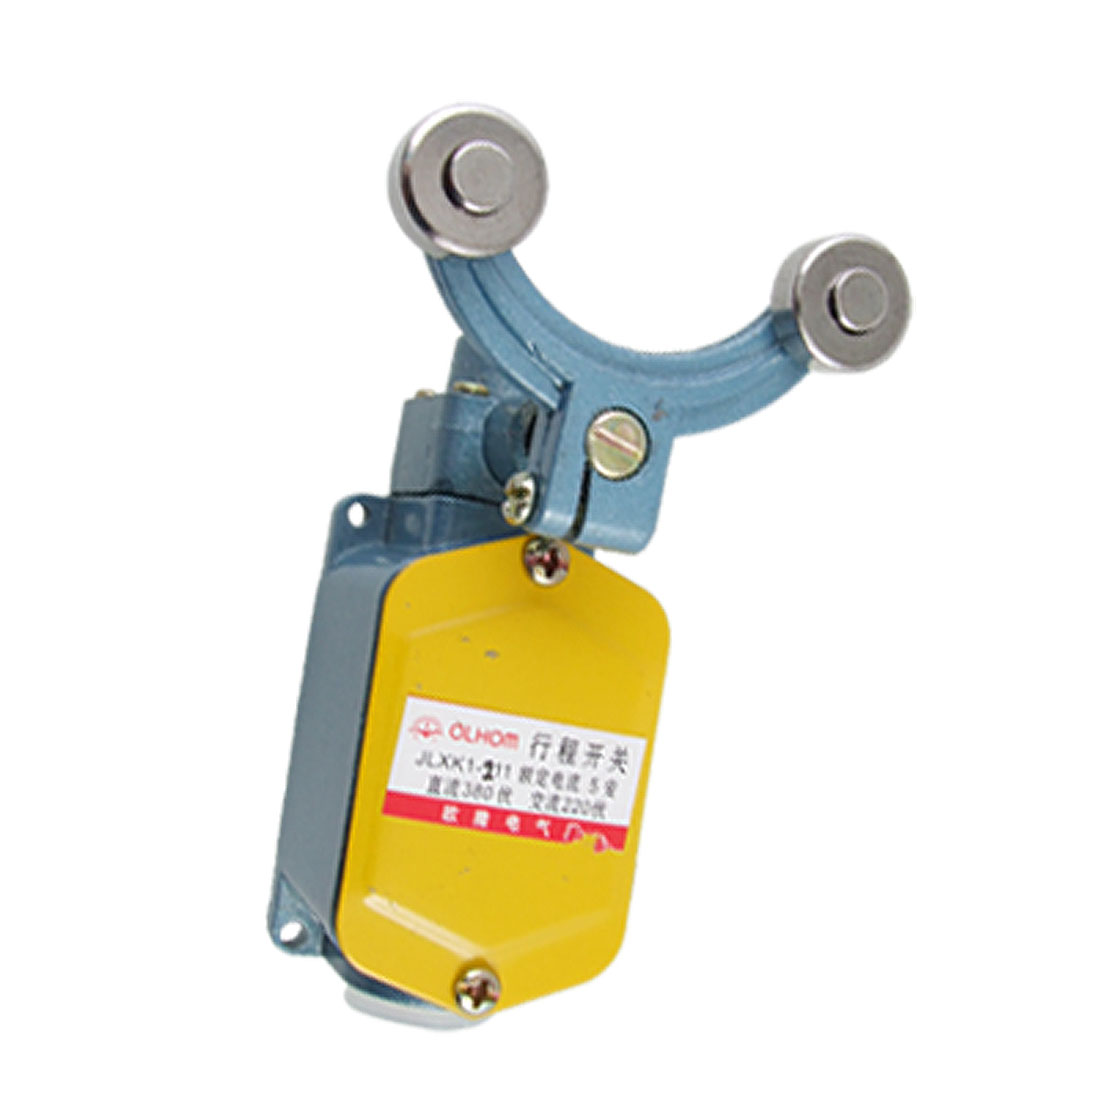 JLXK1-211 Momentary Double Rotary Roller Lever Arm Enclosed Limit Switch